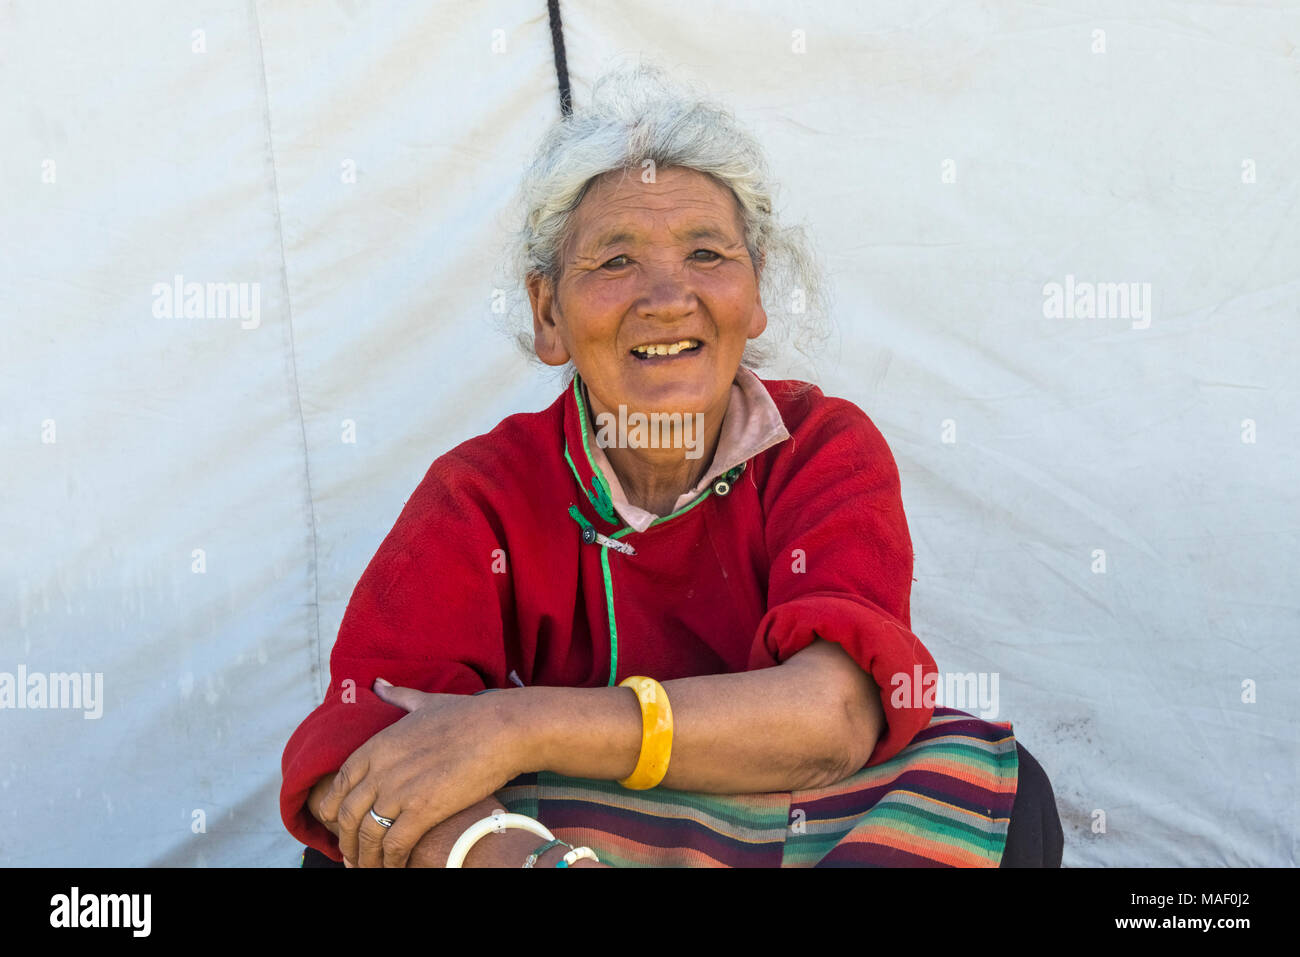 Tibetan woman in traditional clothing at Horse Race Festival, Litang, western Sichuan, China - Stock Image